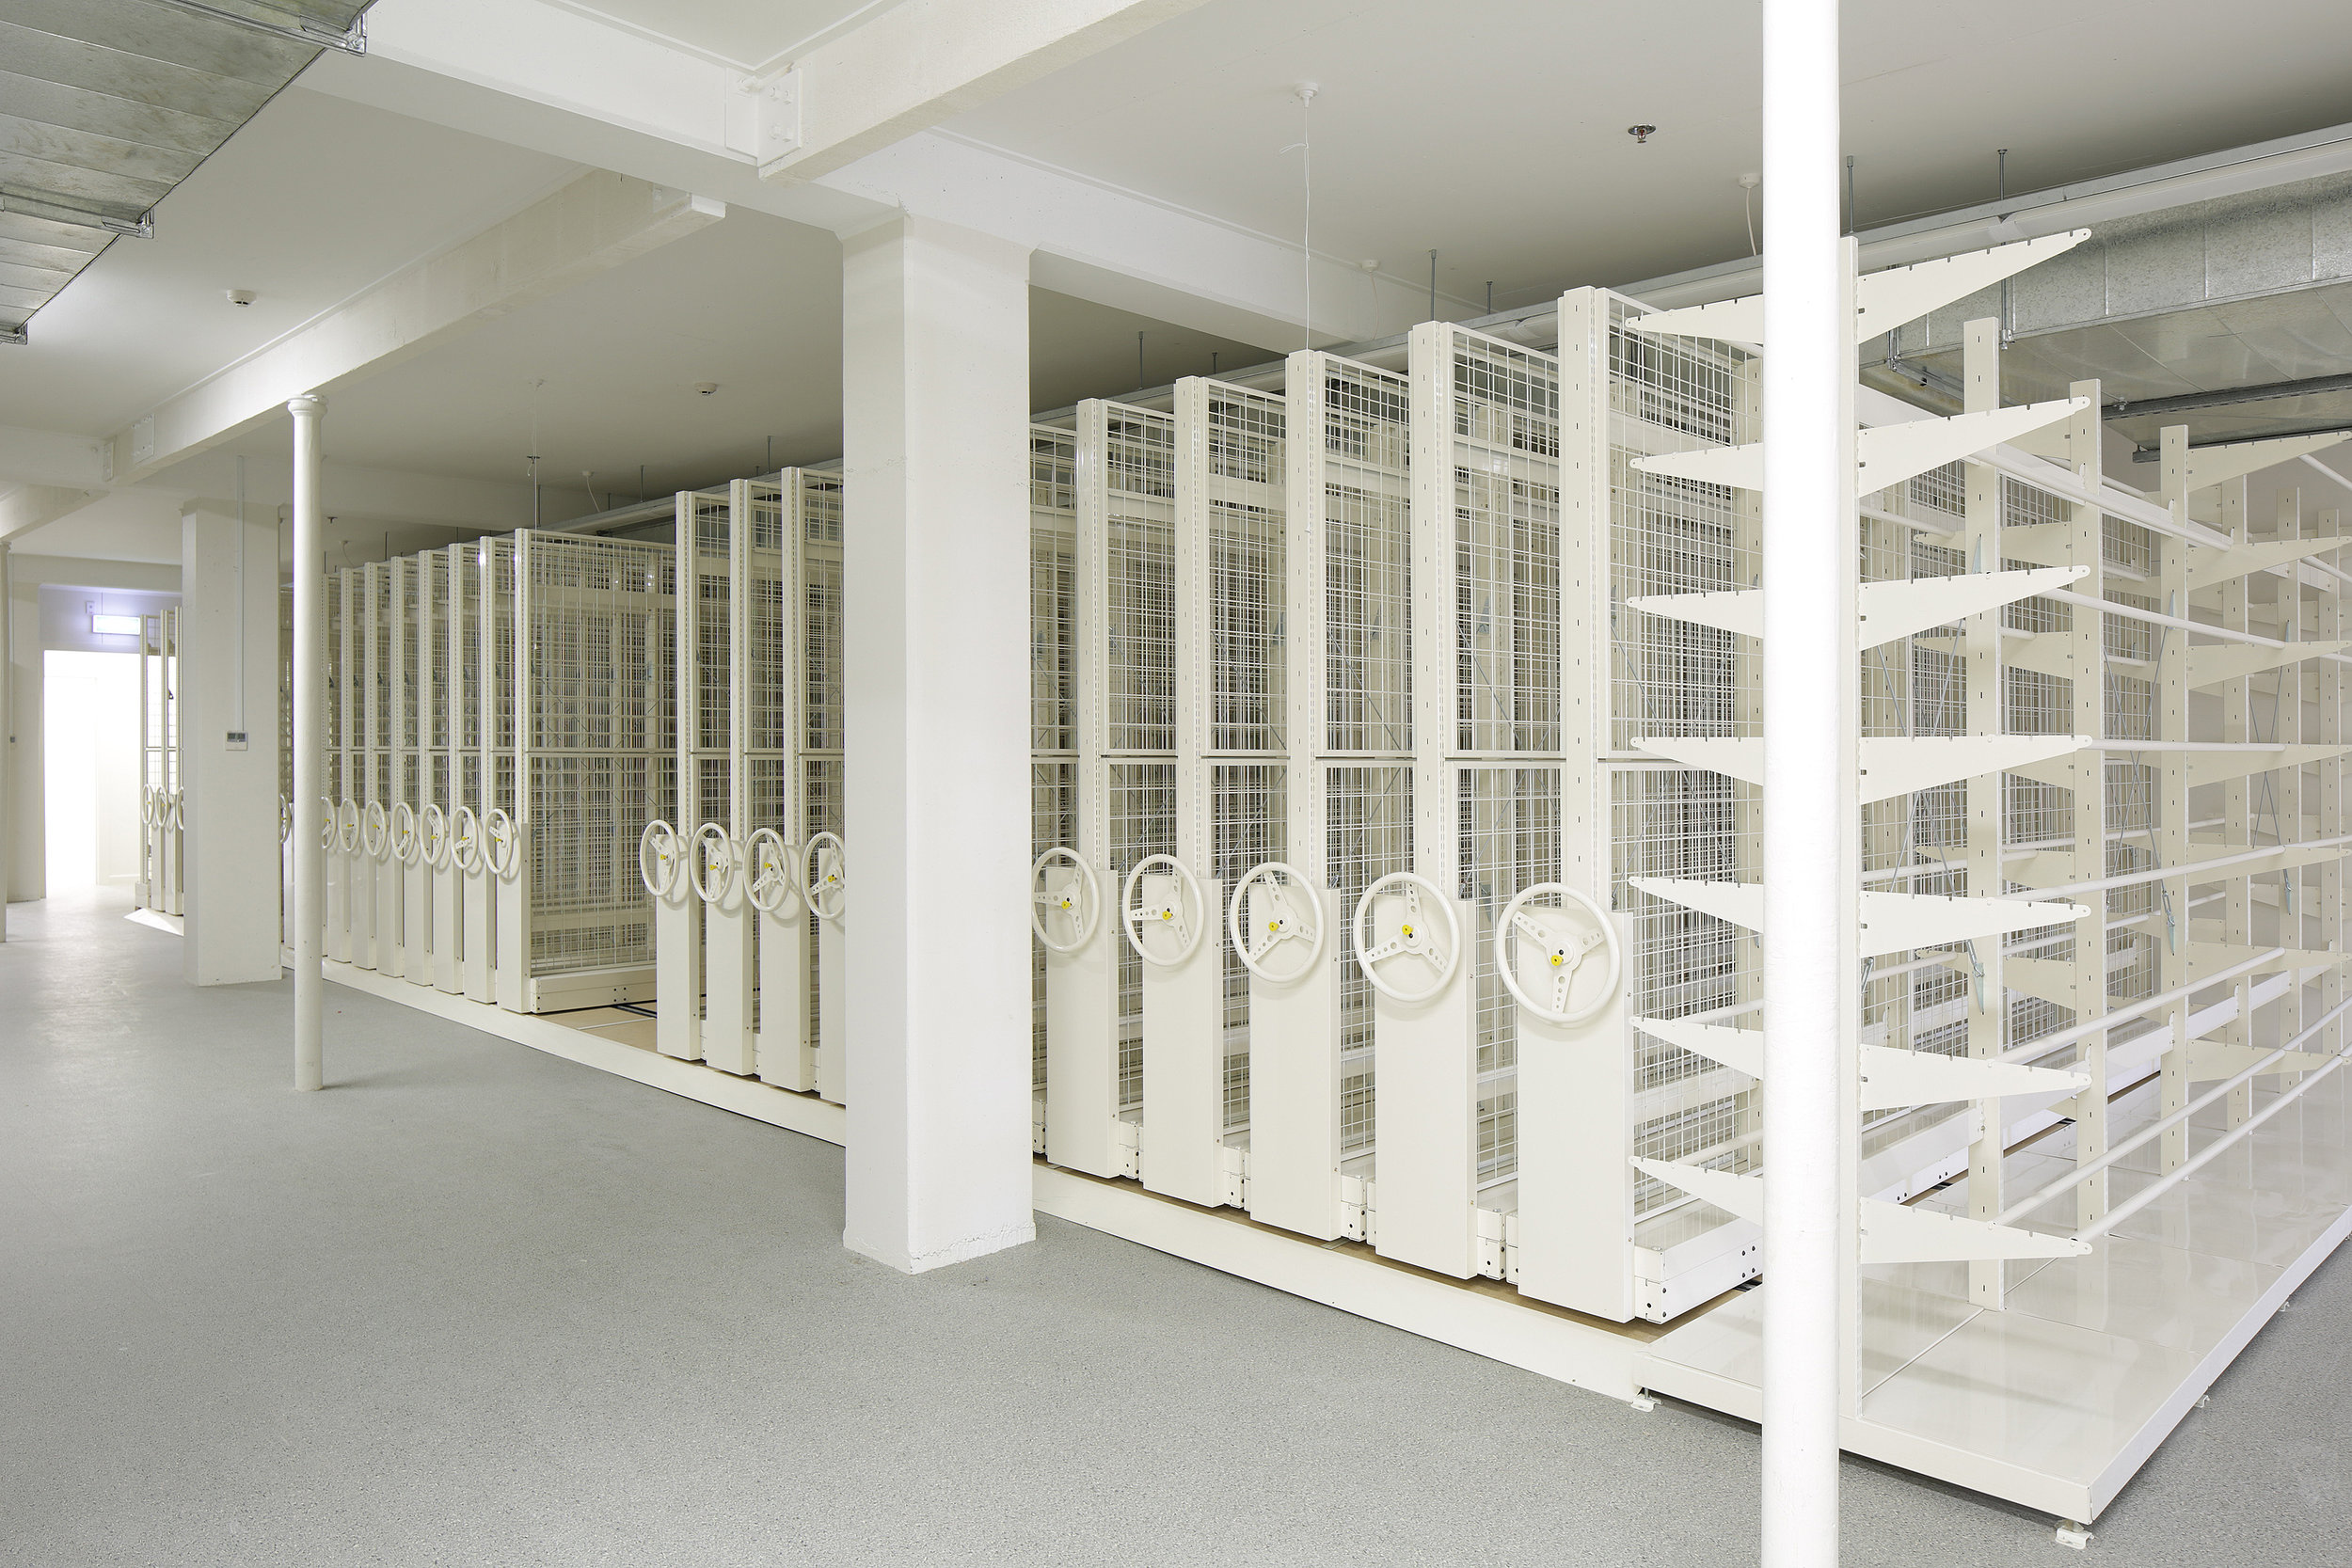 AA STORAGE RACKS.jpg